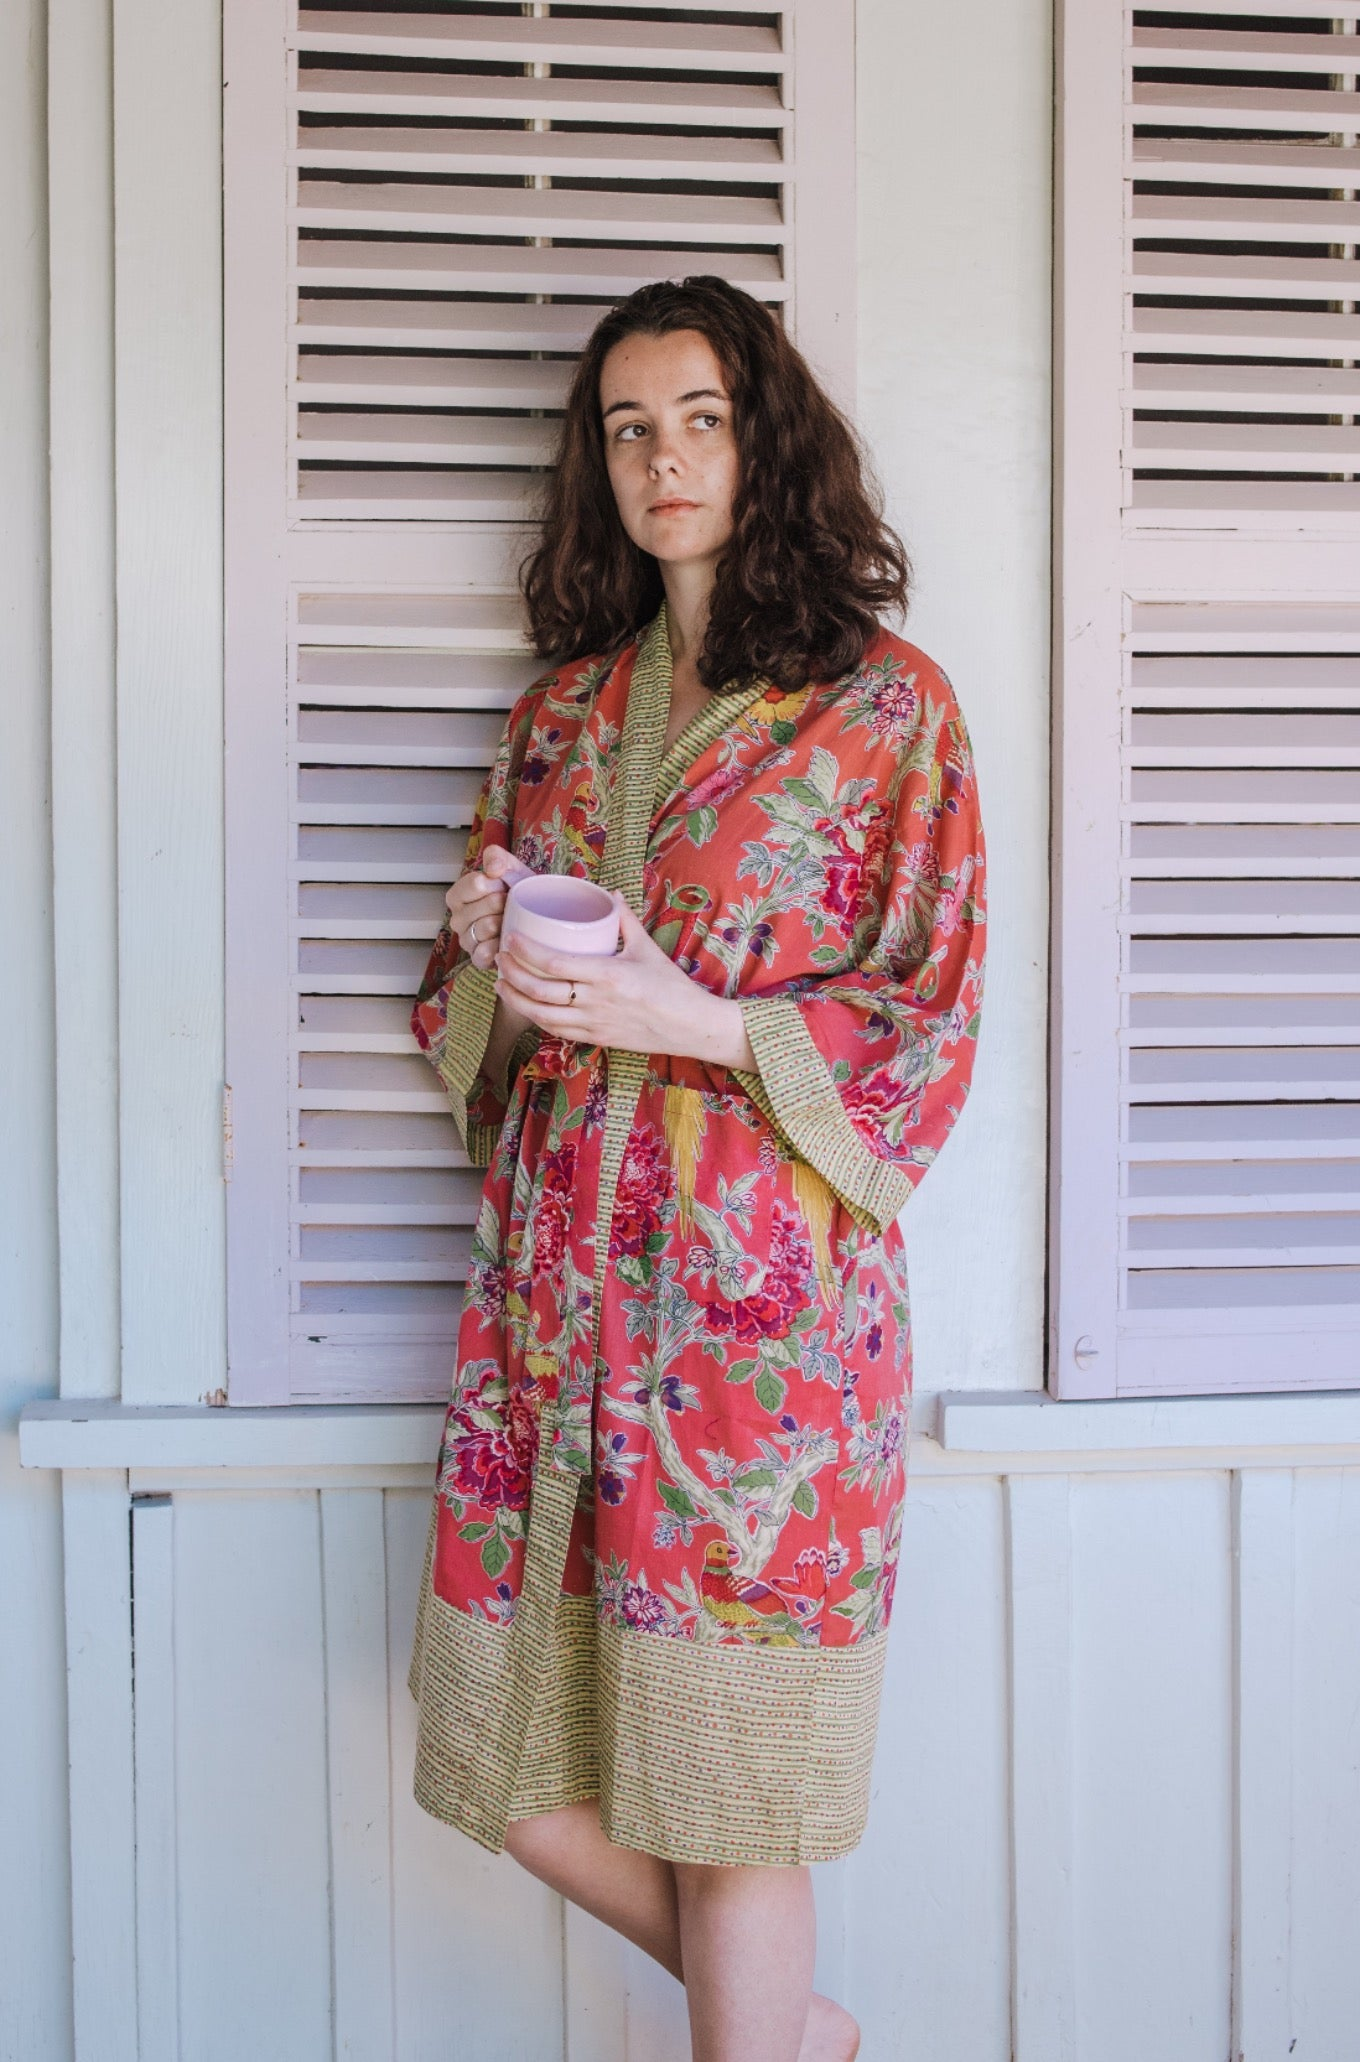 Cotton voile kimono robe dressing gown in coral bird print with yellow trim.